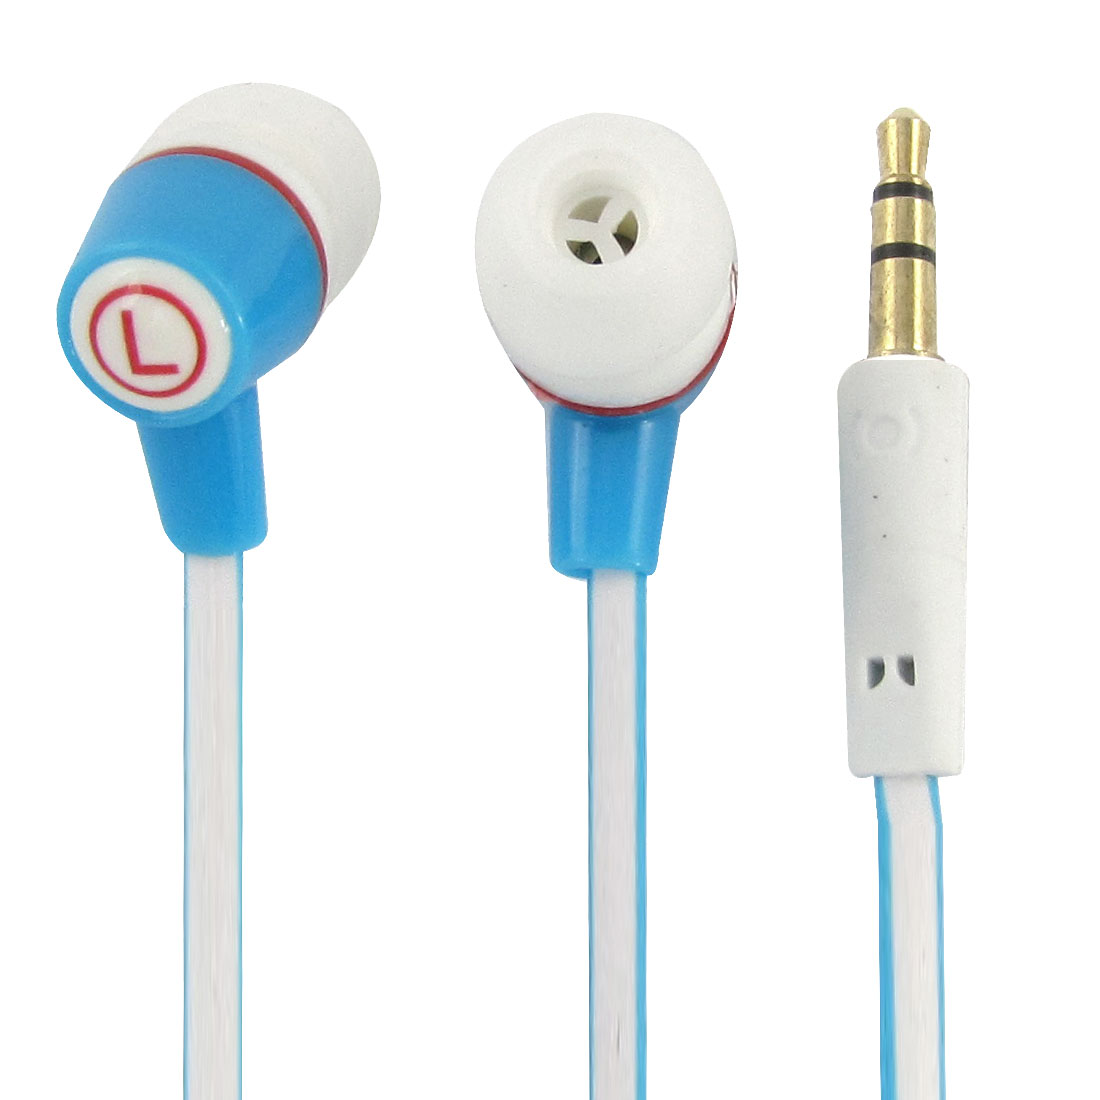 3.5mm Earphone Headphone 3.8ft Cable White Blue for Smartphone